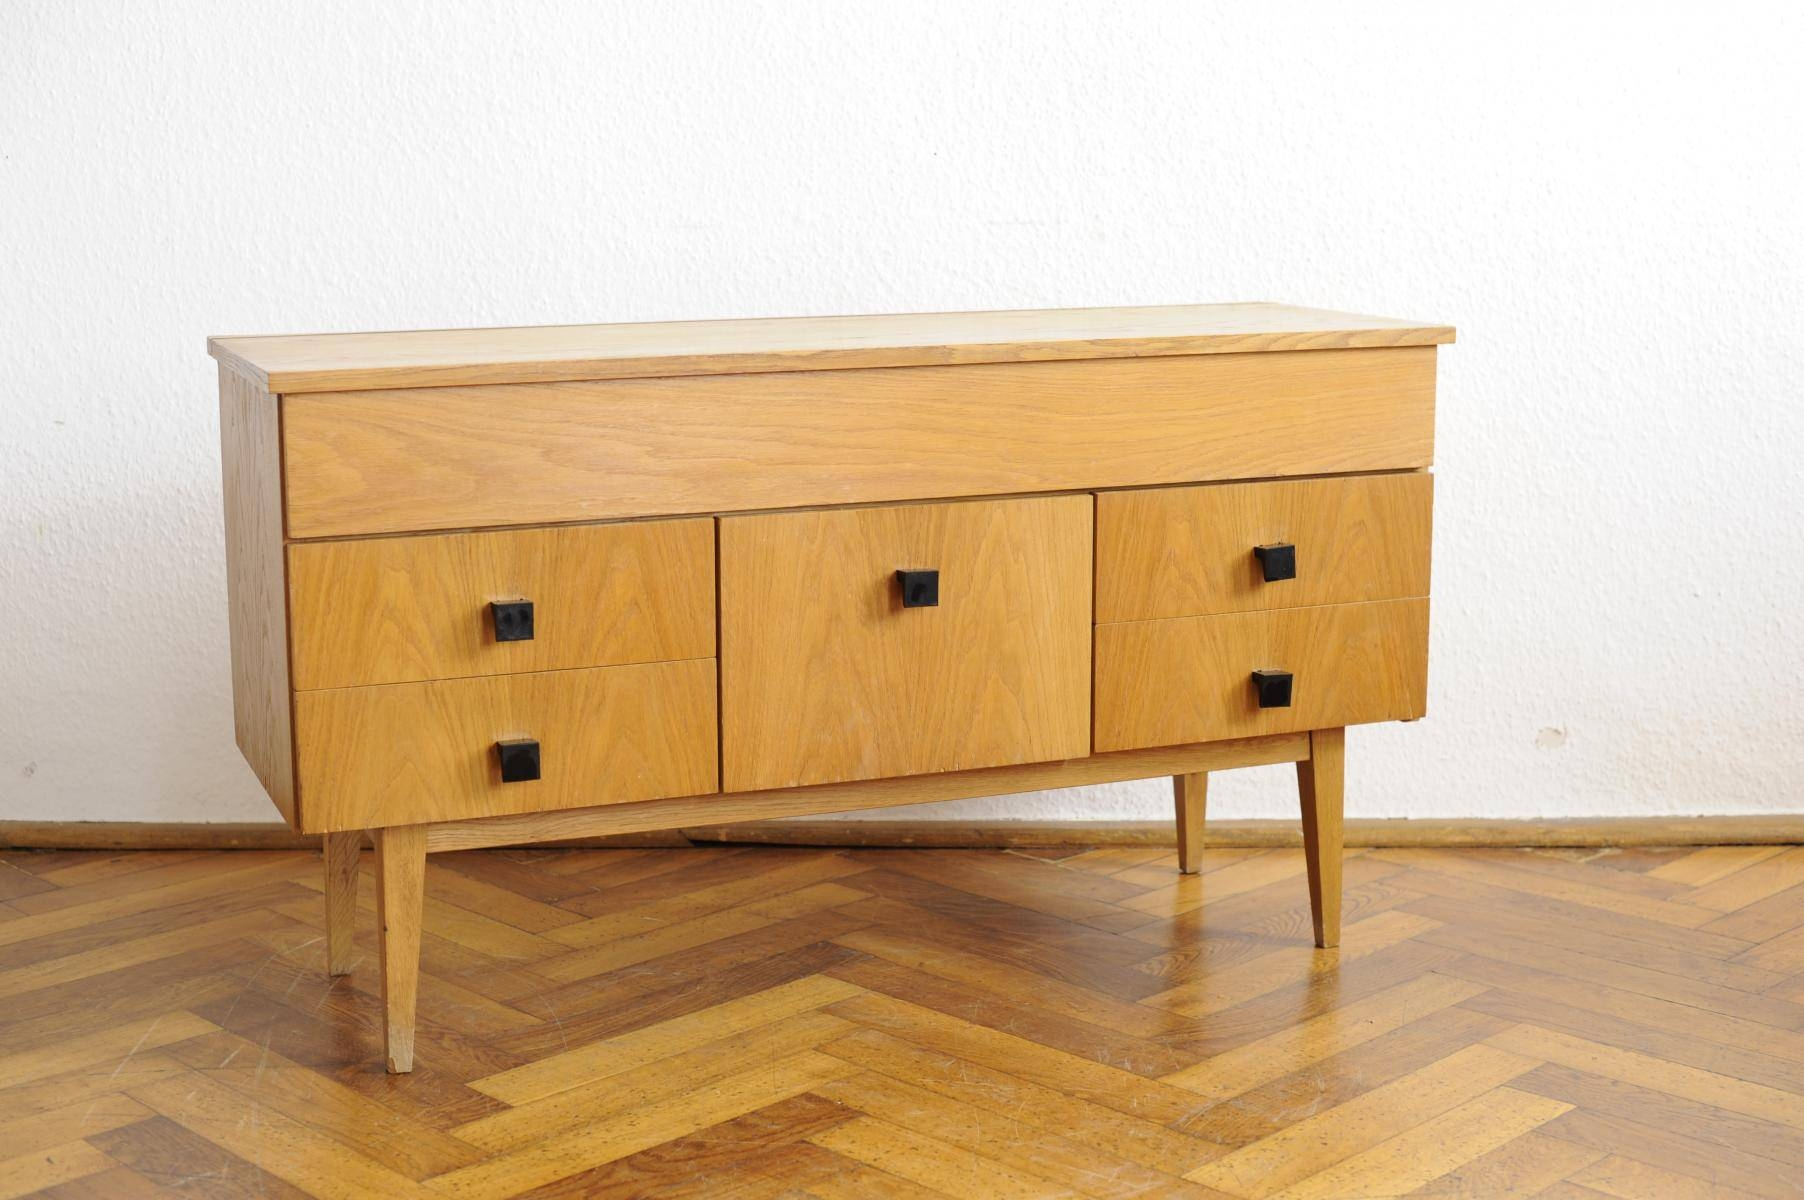 Vintage Modernist Sideboard With Beech Veneer For Sale At Pamono Pertaining To Beech Sideboards (#19 of 20)